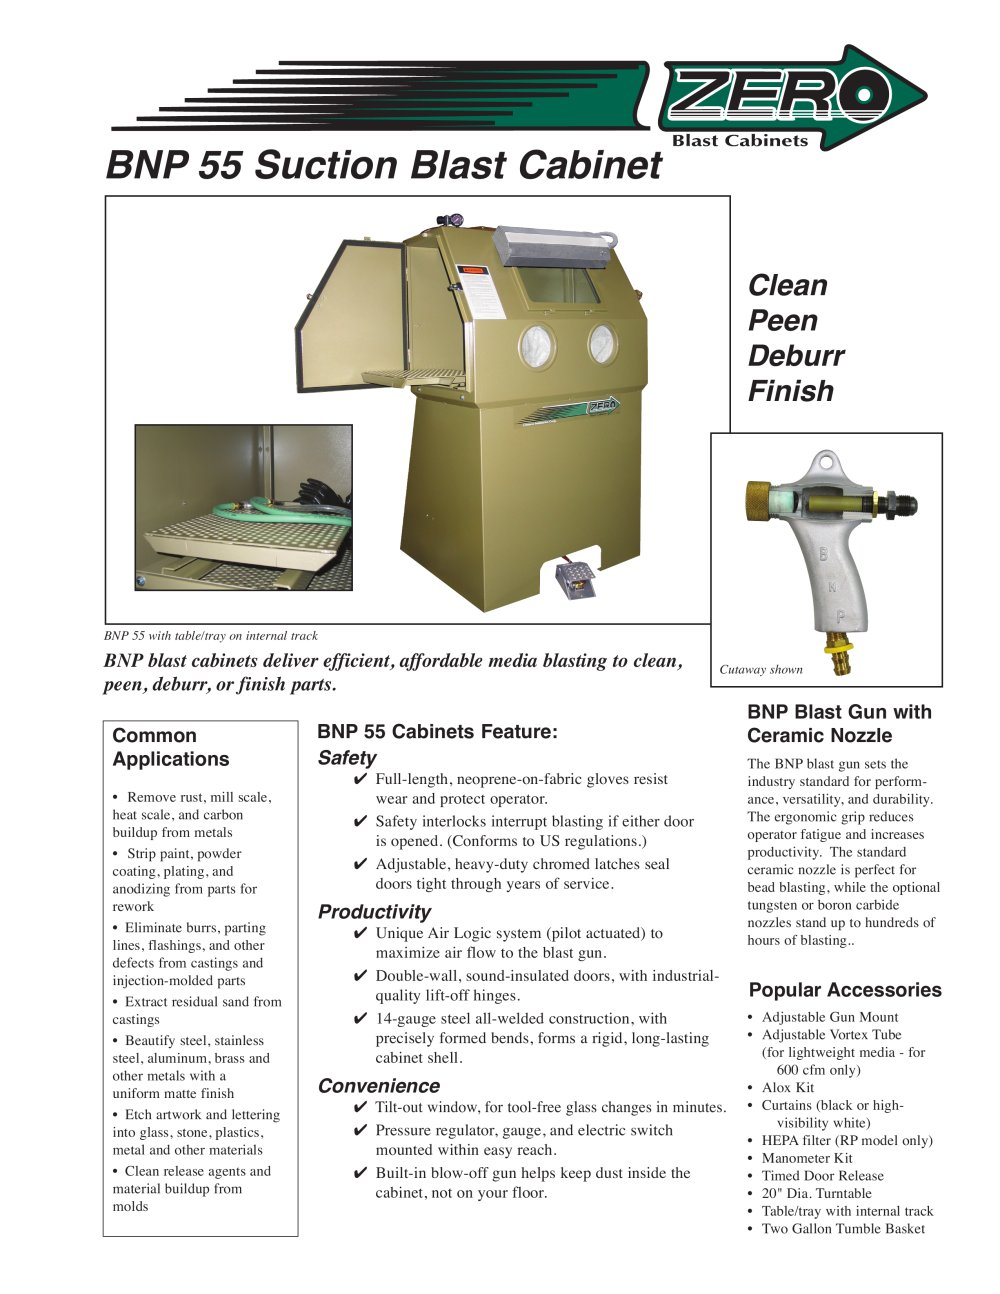 Clemco Industries Blast Cabinets Bnp 55 Suction Blast Cabinet Rev D Clemco Industries Pdf